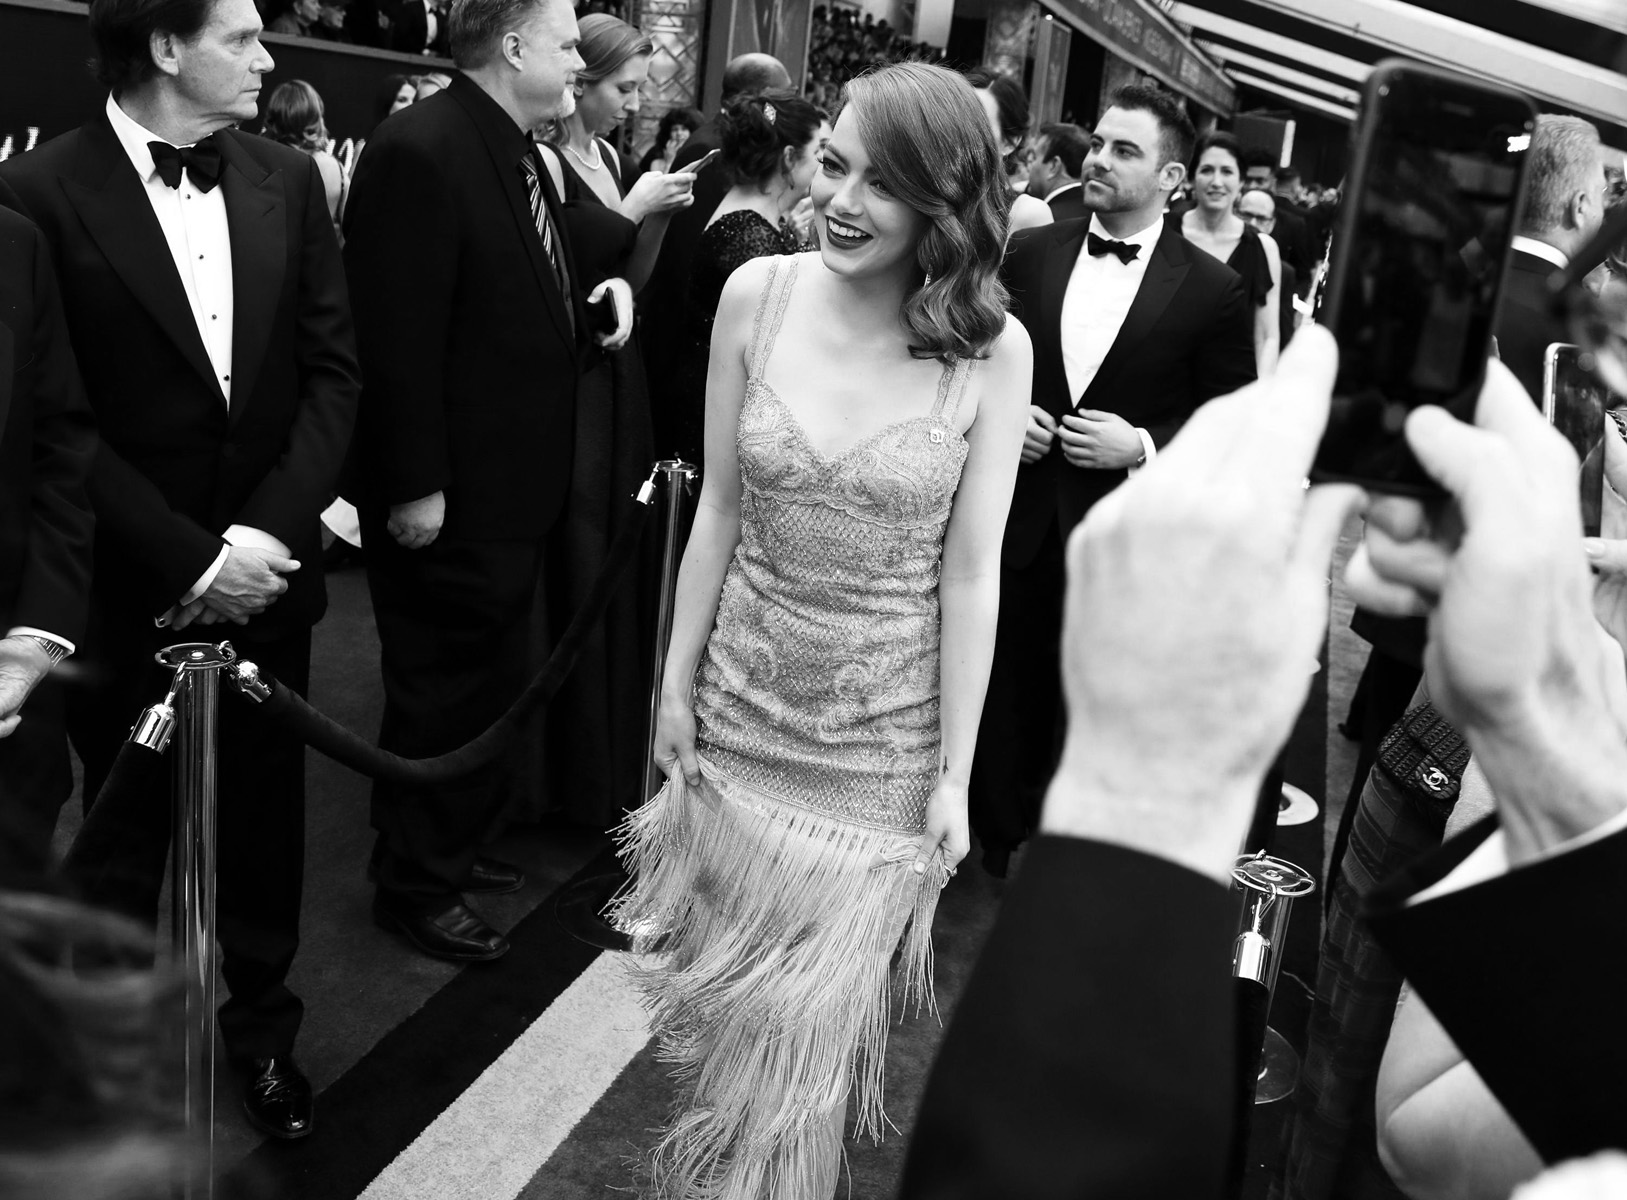 Emma Stone arrives at the Oscars on Sunday, Feb. 26, 2017, at the Dolby Theatre in Los Angeles. (Photo by Matt Sayles/Invision/AP)